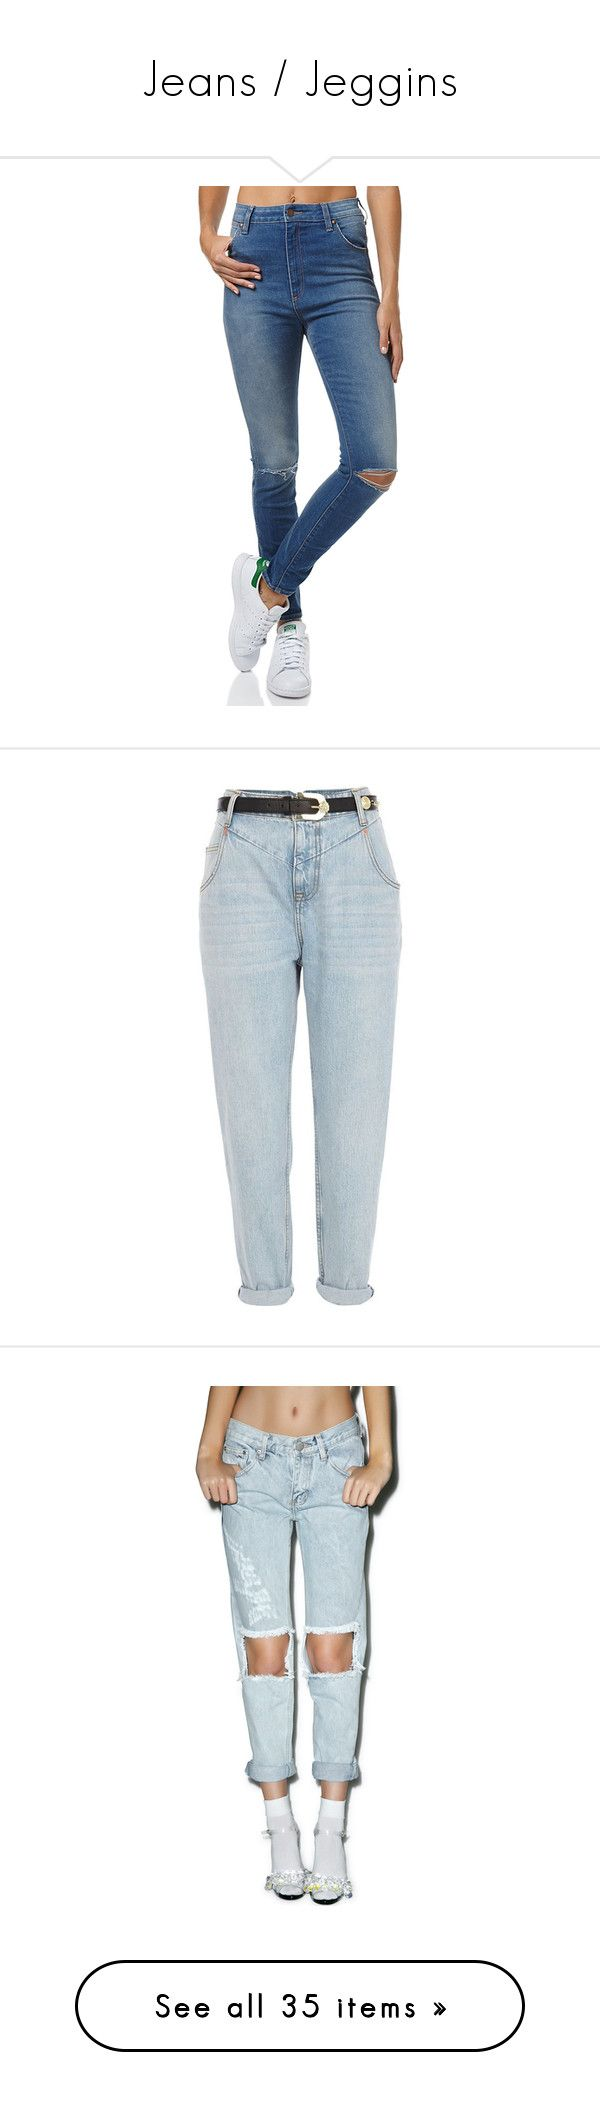 """""""Jeans / Jeggins"""" by direction-of-the-summer ❤ liked on Polyvore featuring jeans, bottoms, calça, blue, skinny jeans, women, wrangler skinny jeans, blue skinny jeans, flap-pocket jeans and patch jeans"""